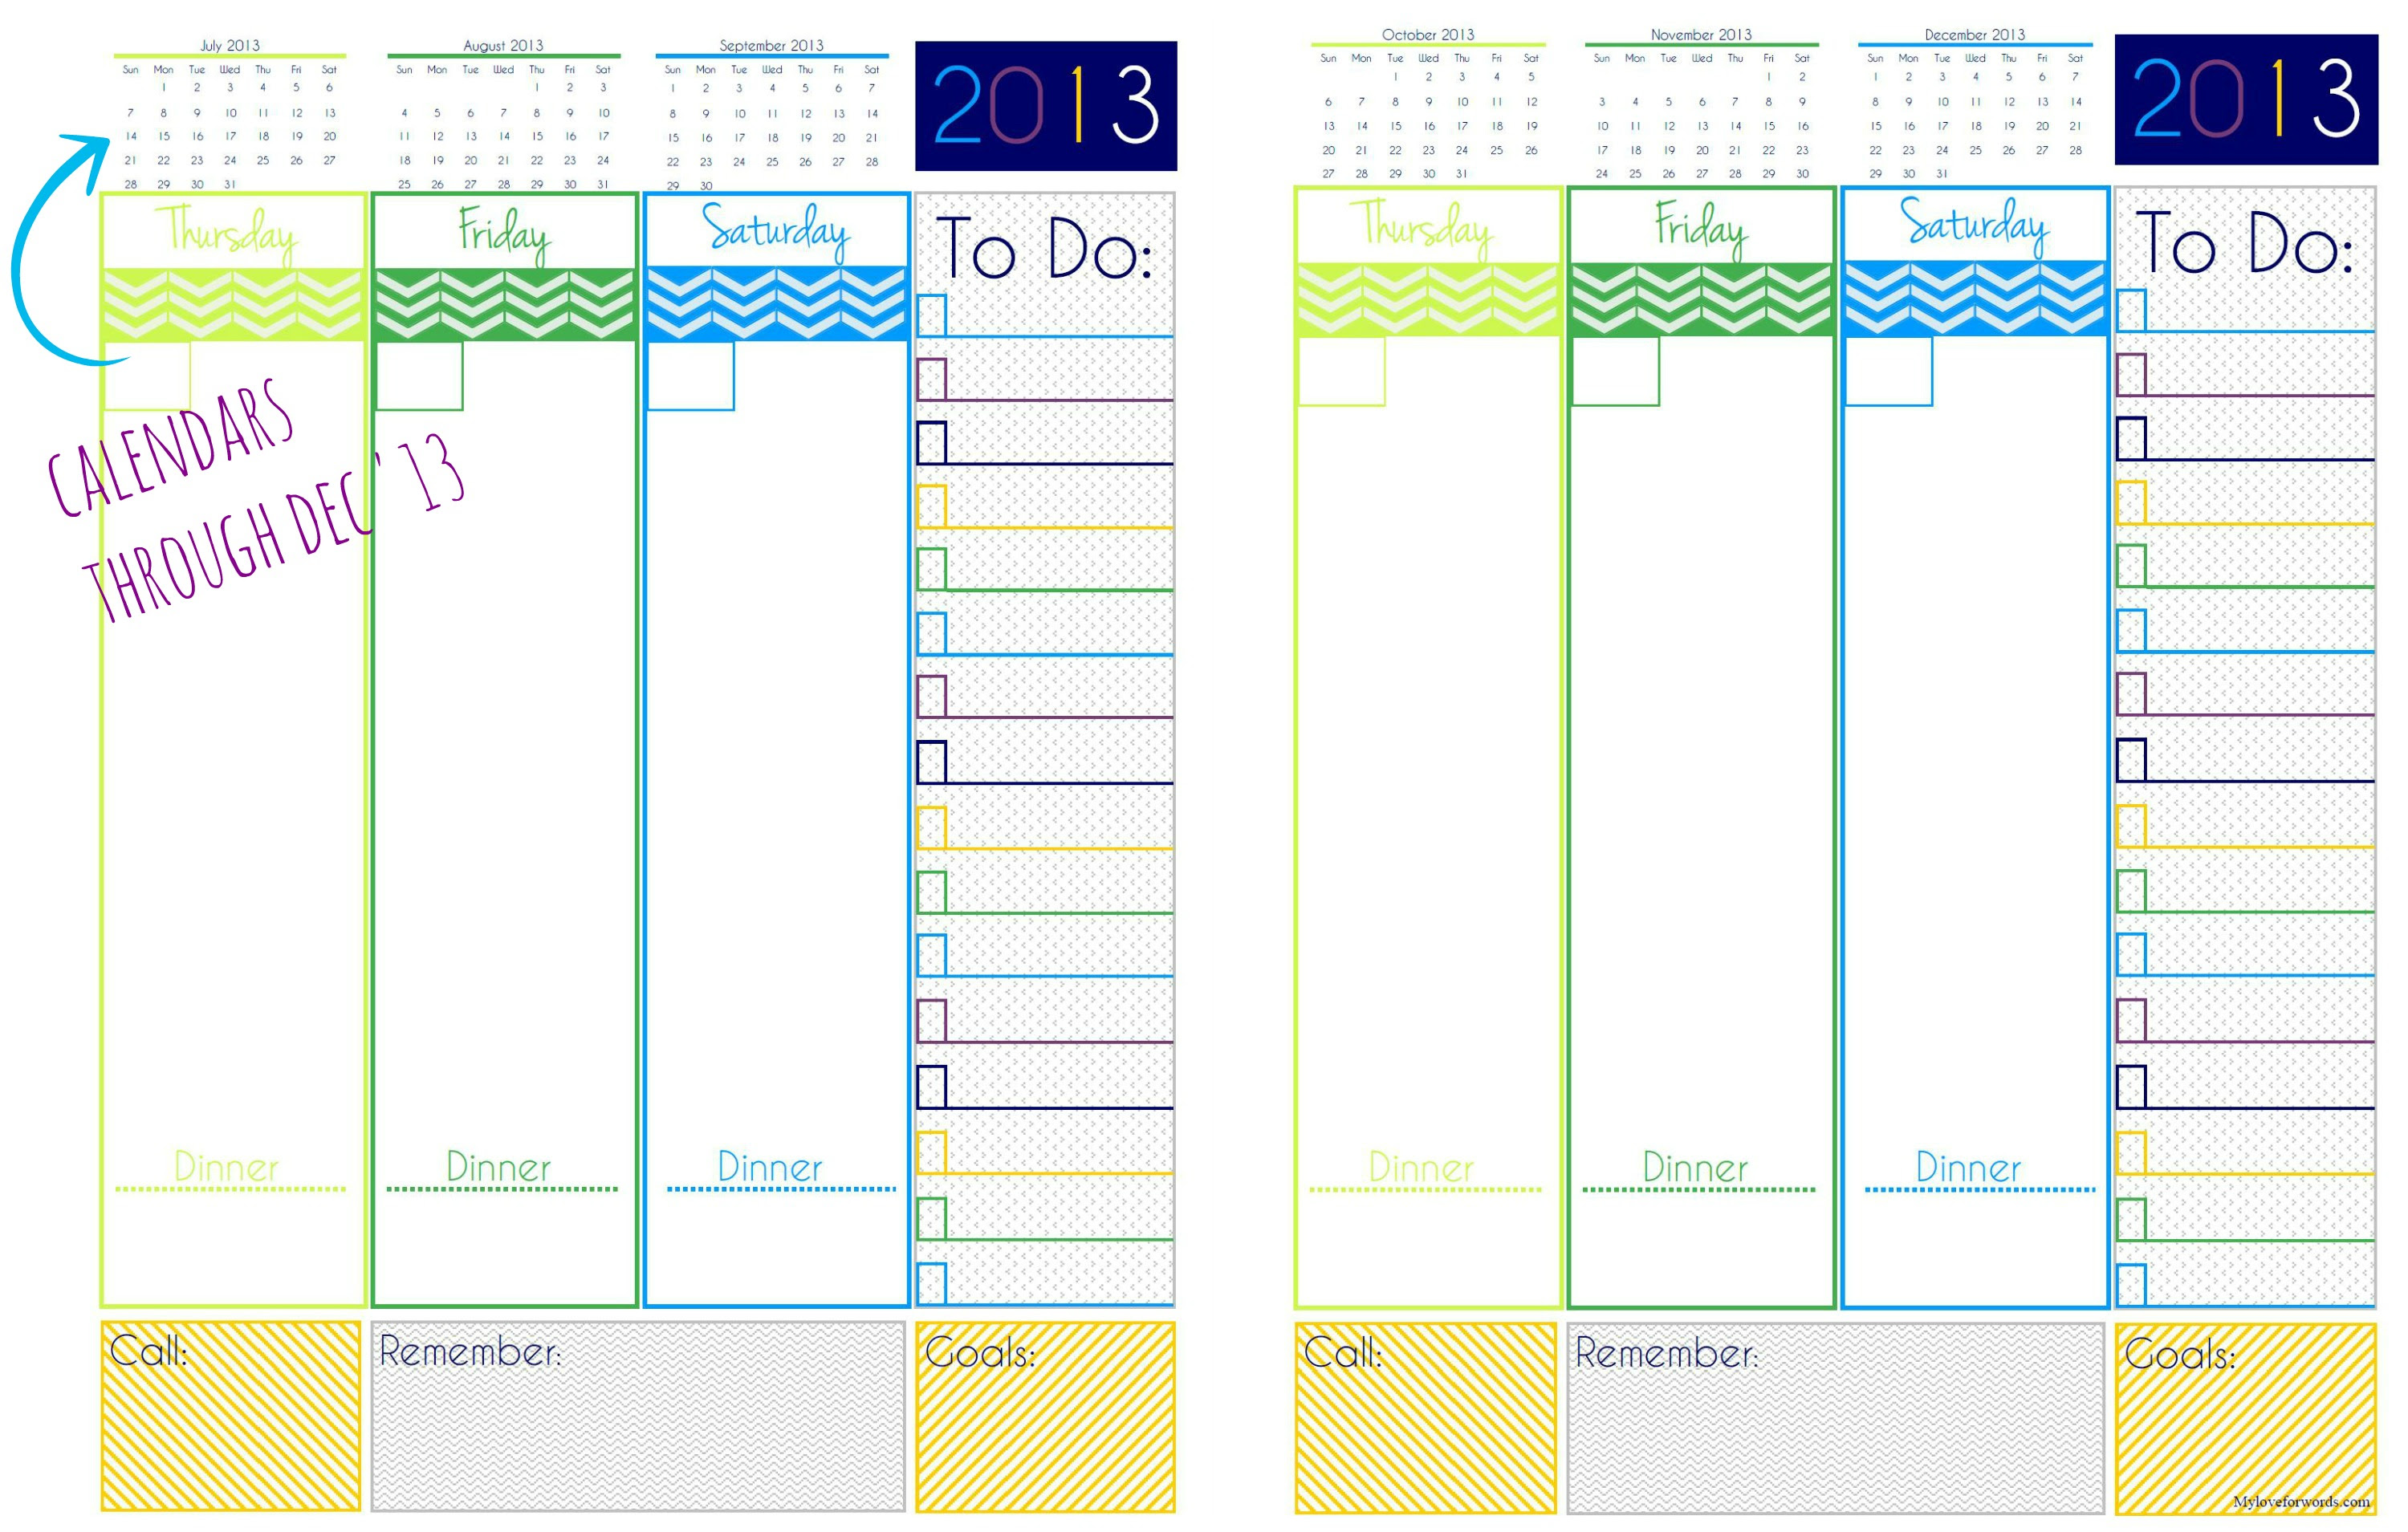 2013 Day Planner {Free Printable}